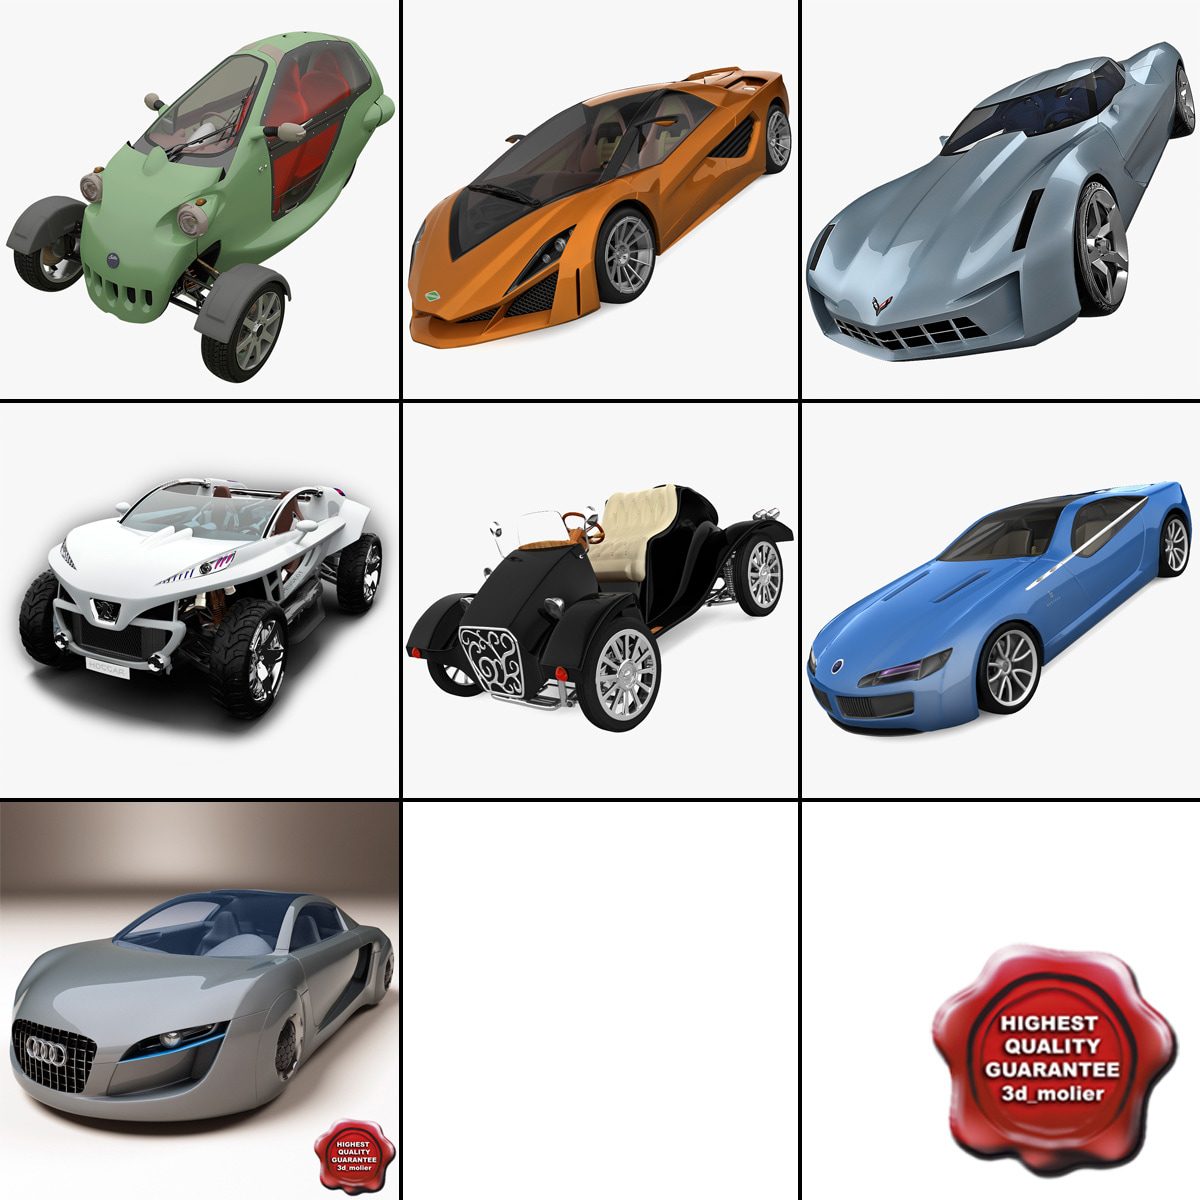 Concept_Cars_Collection_4_000.jpg